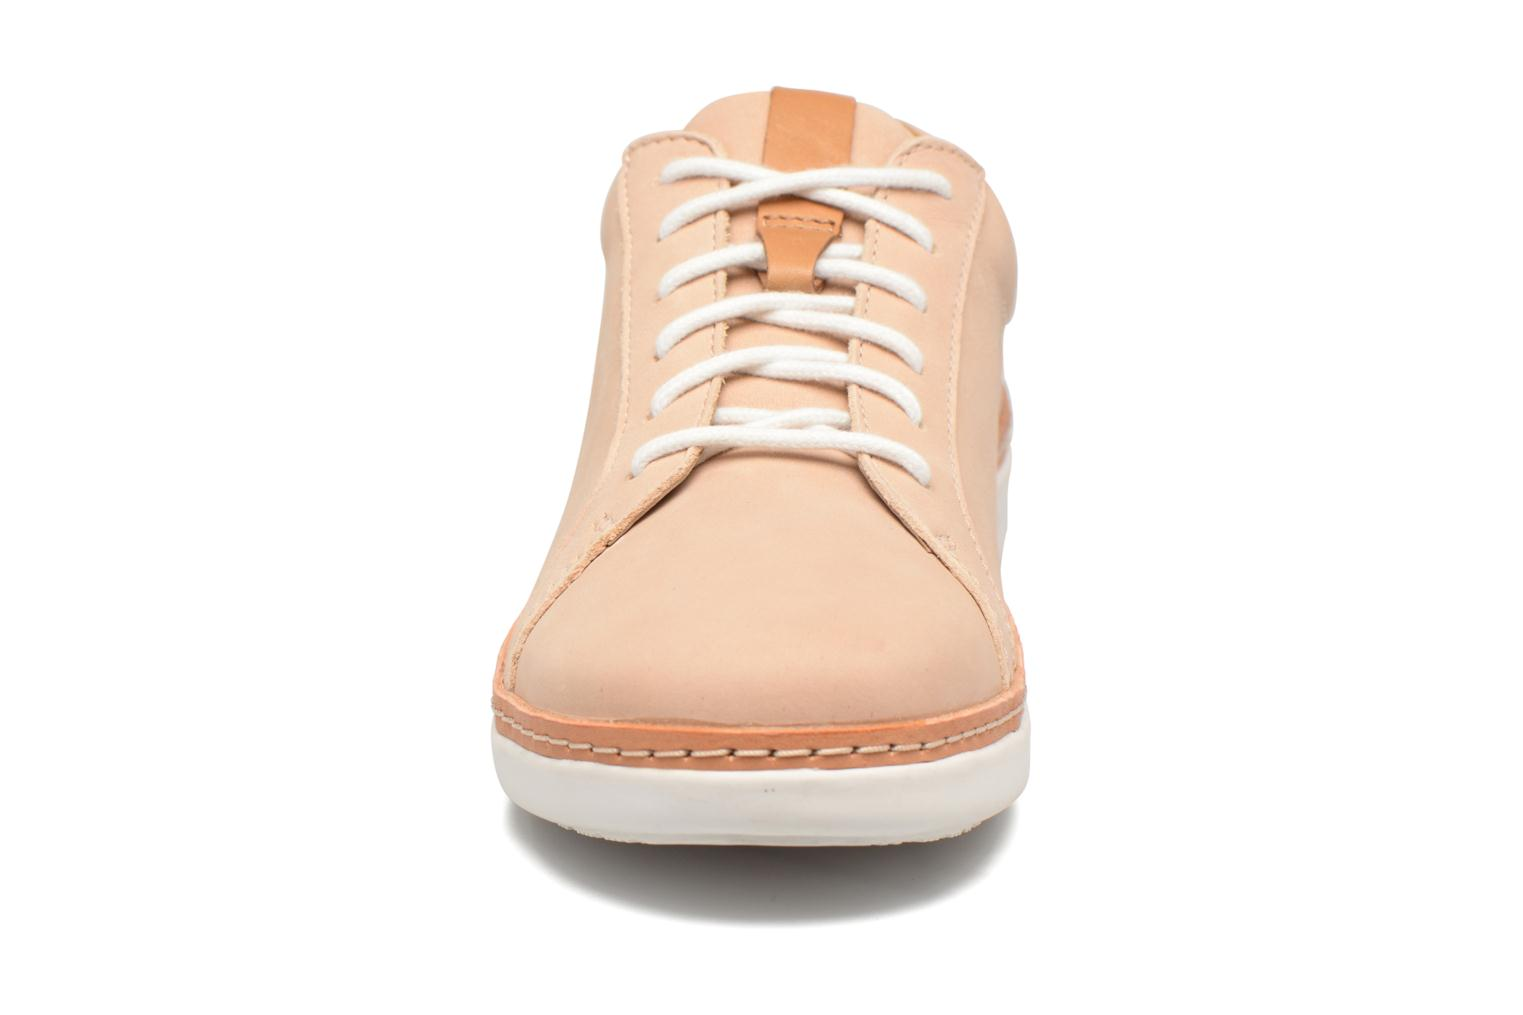 Chaussures à lacets Clarks Amberlee Rosa Beige vue portées chaussures